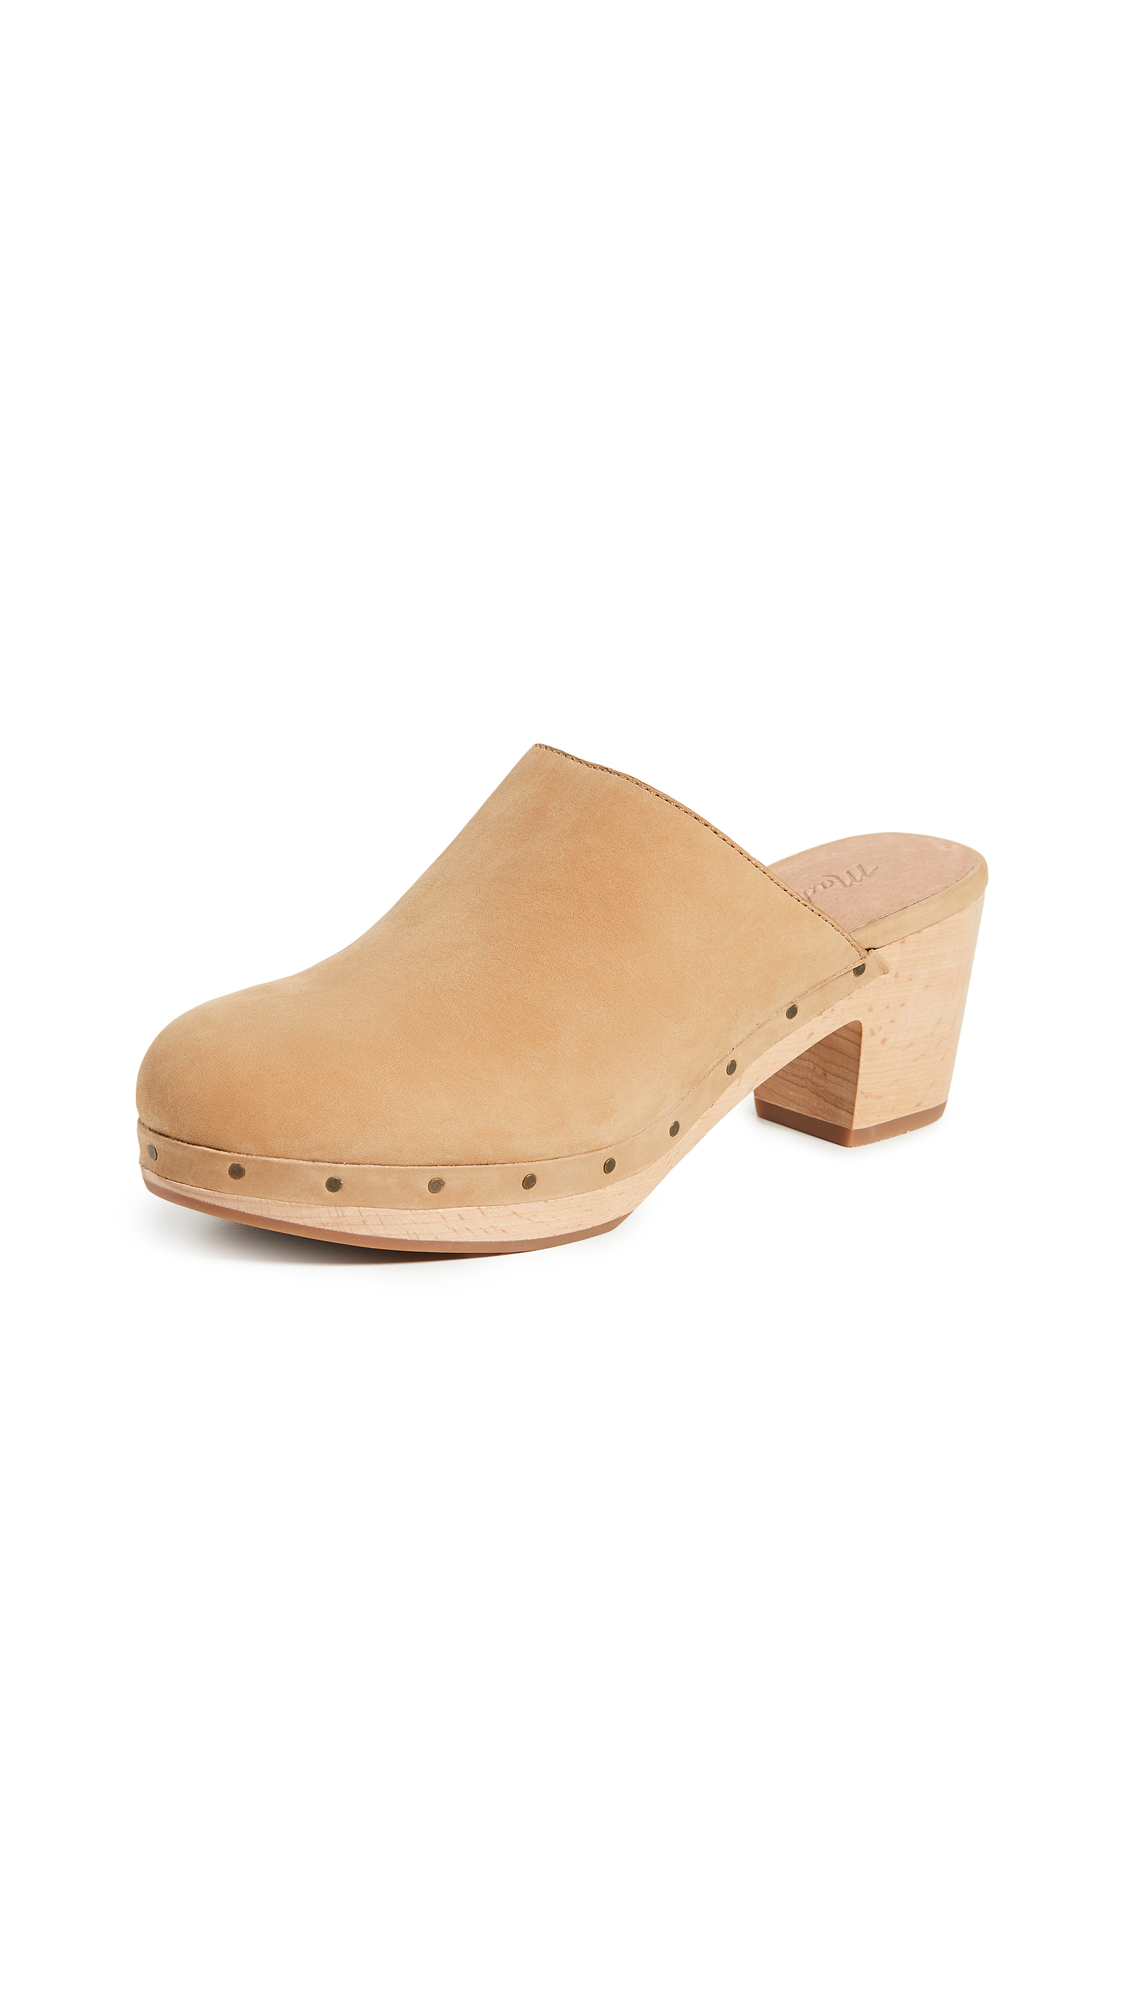 Madewell Ayanna Clogs - 30% Off Sale